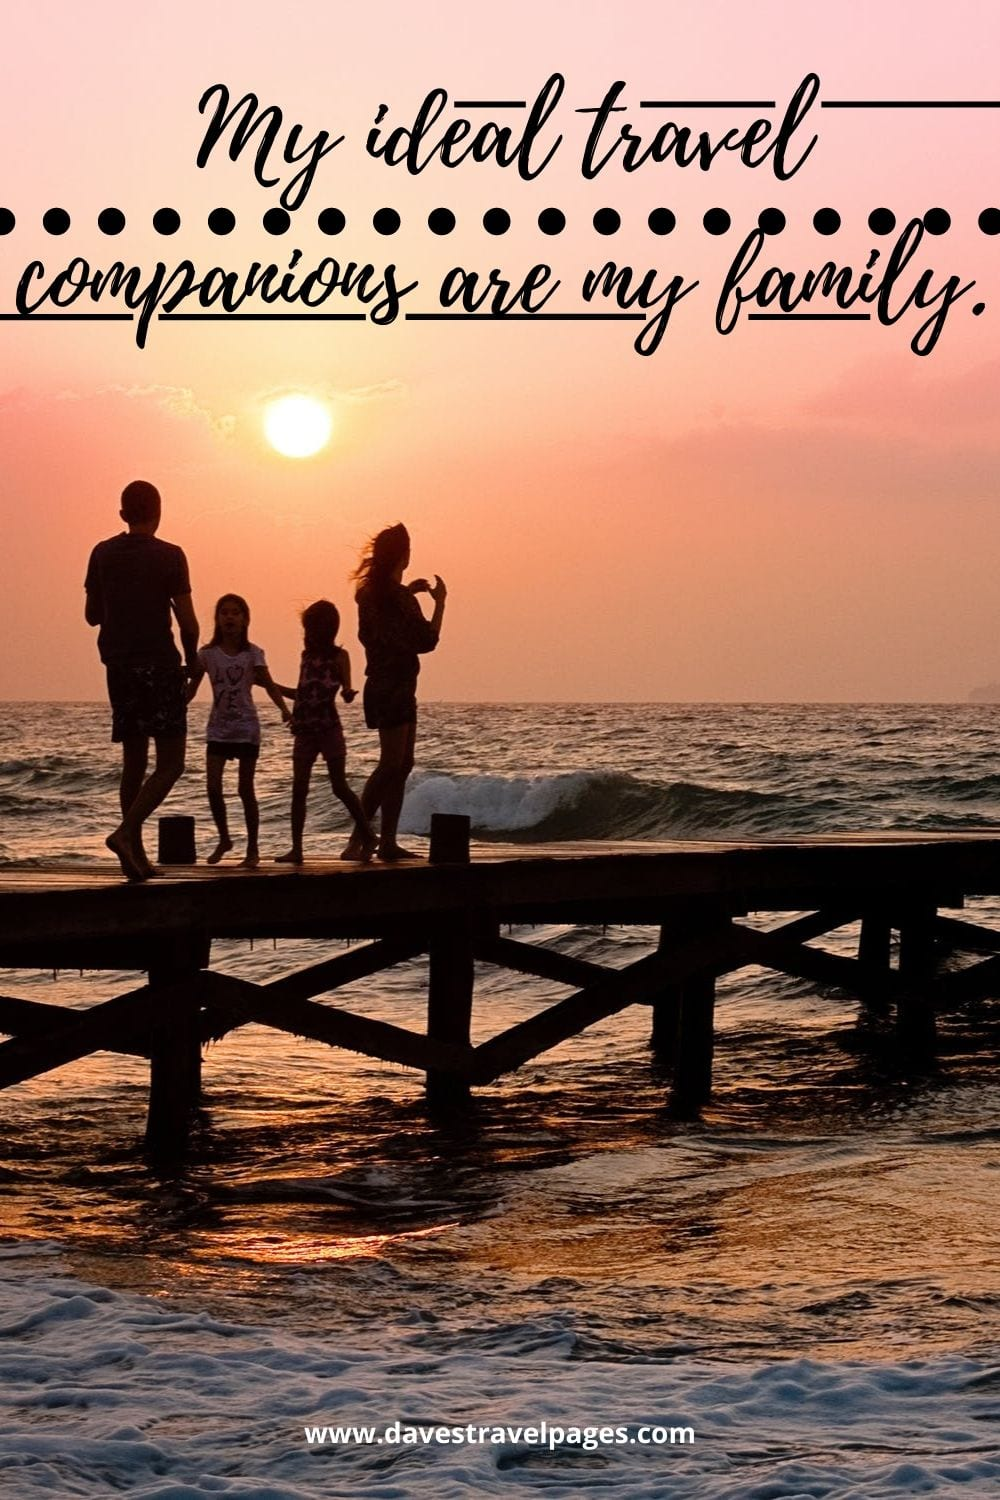 Family travel quotes - My ideal travel companions are my family. Pharrell Williams